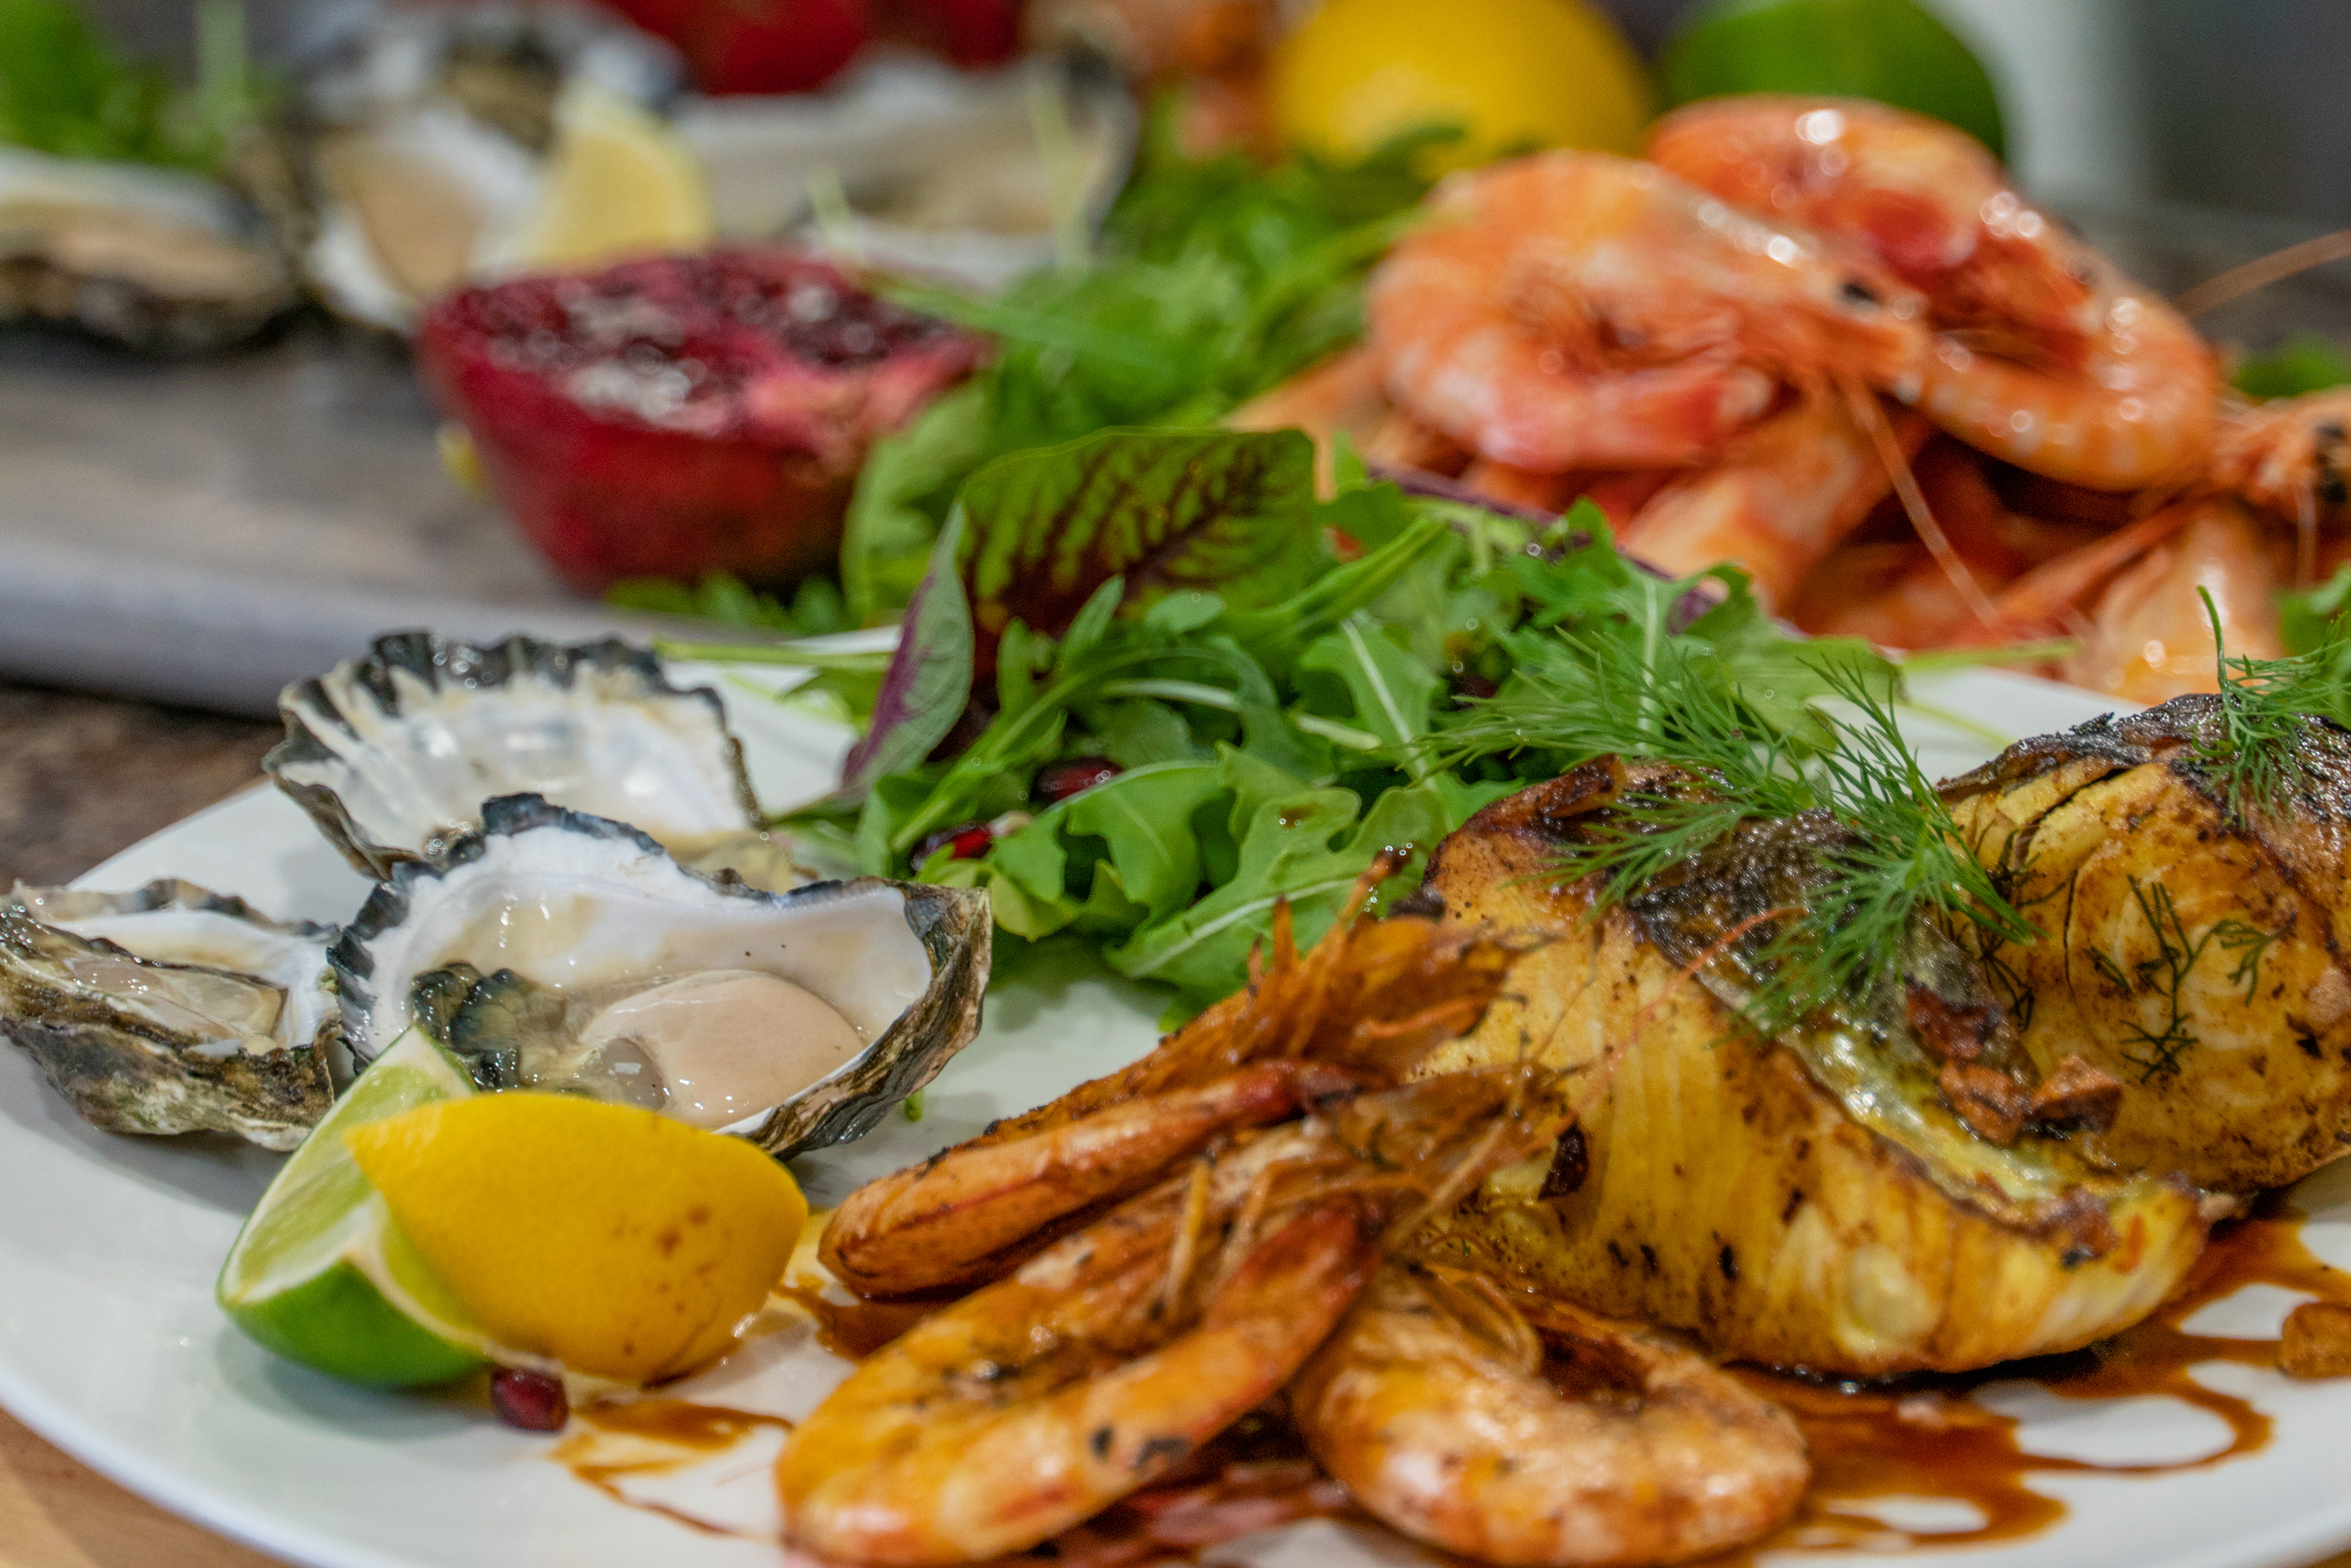 Seafood straight from the ocean to your plate